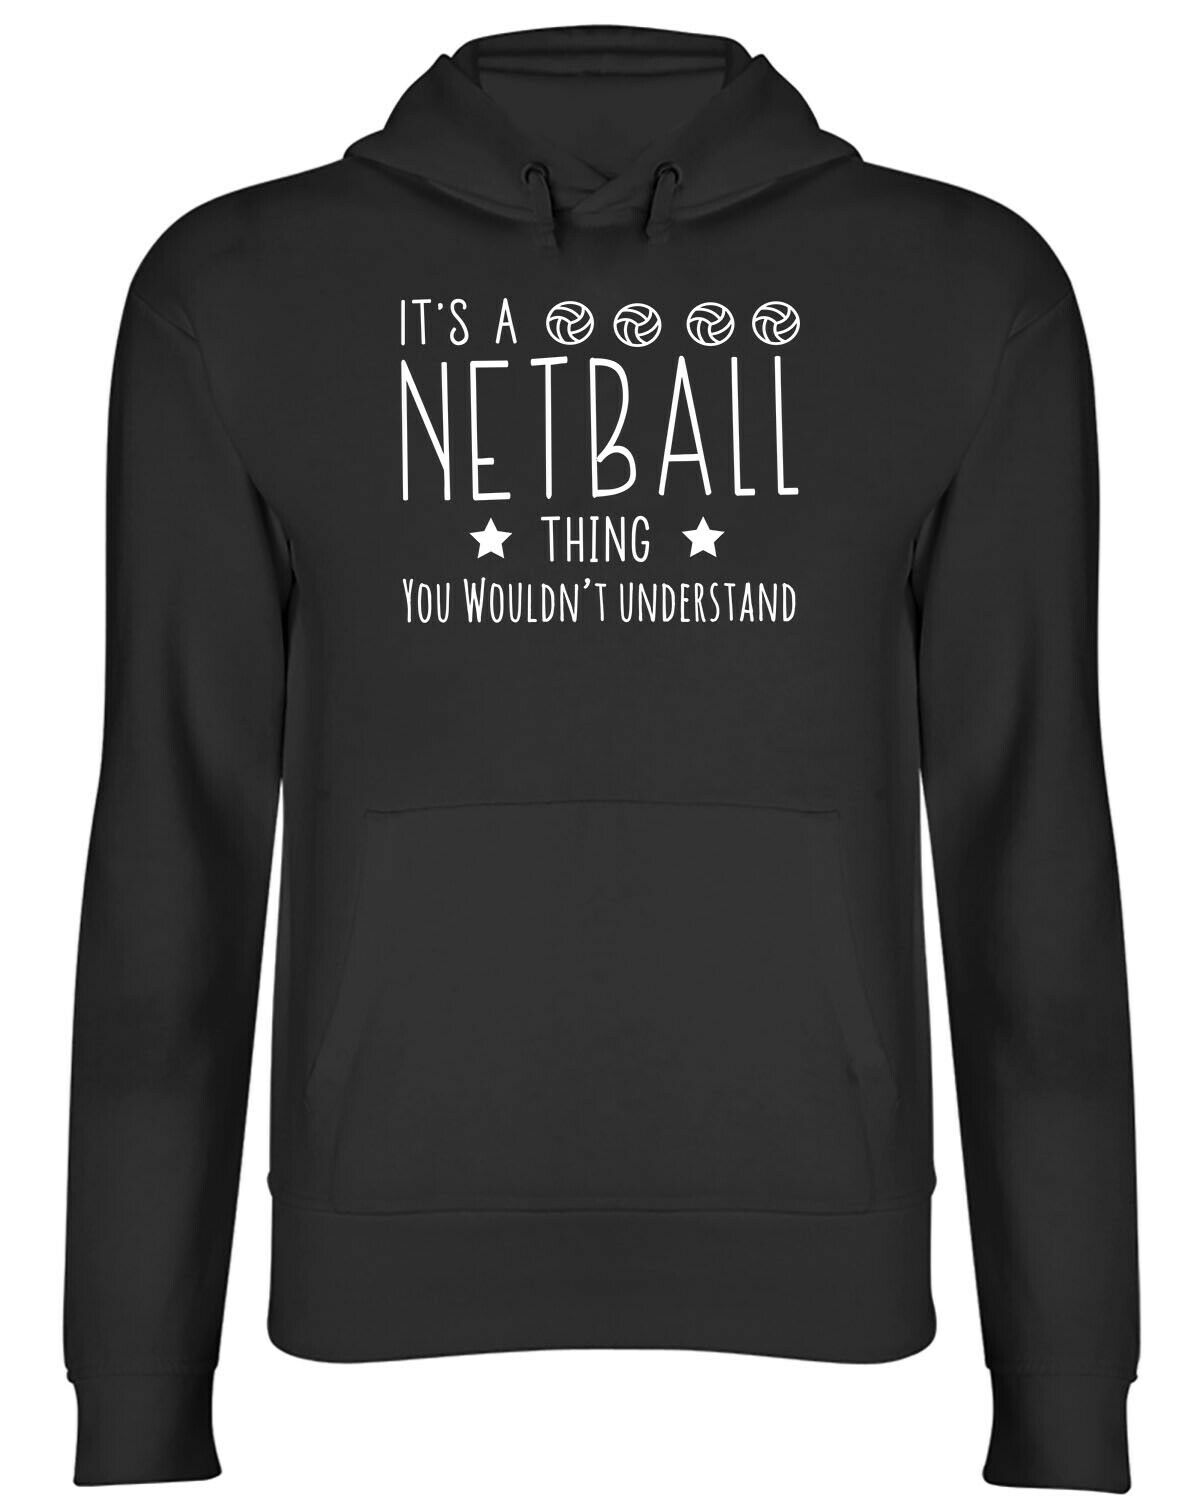 It's a Netball Thing, You Wouldn't Understand Mens Womens Hooded Top Hoodie